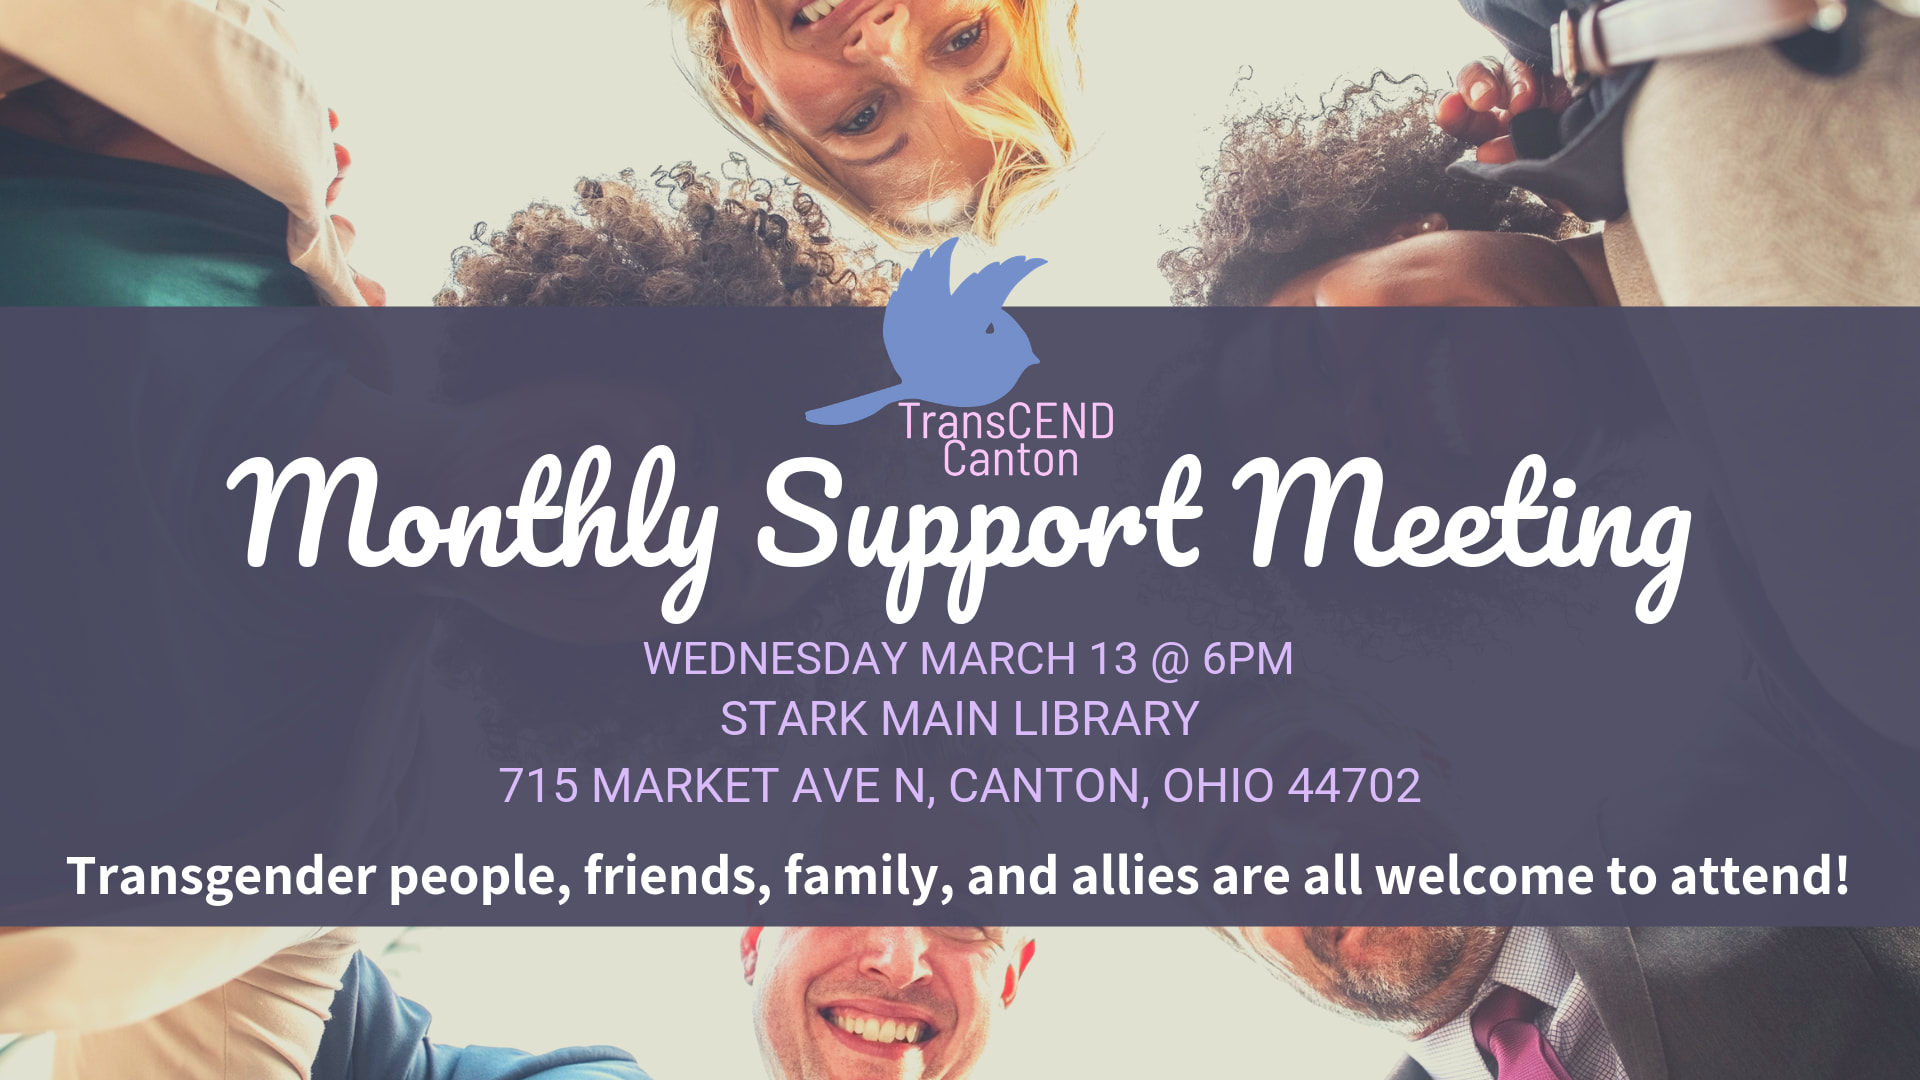 TransCEND Canton March 2019 Support Meeting